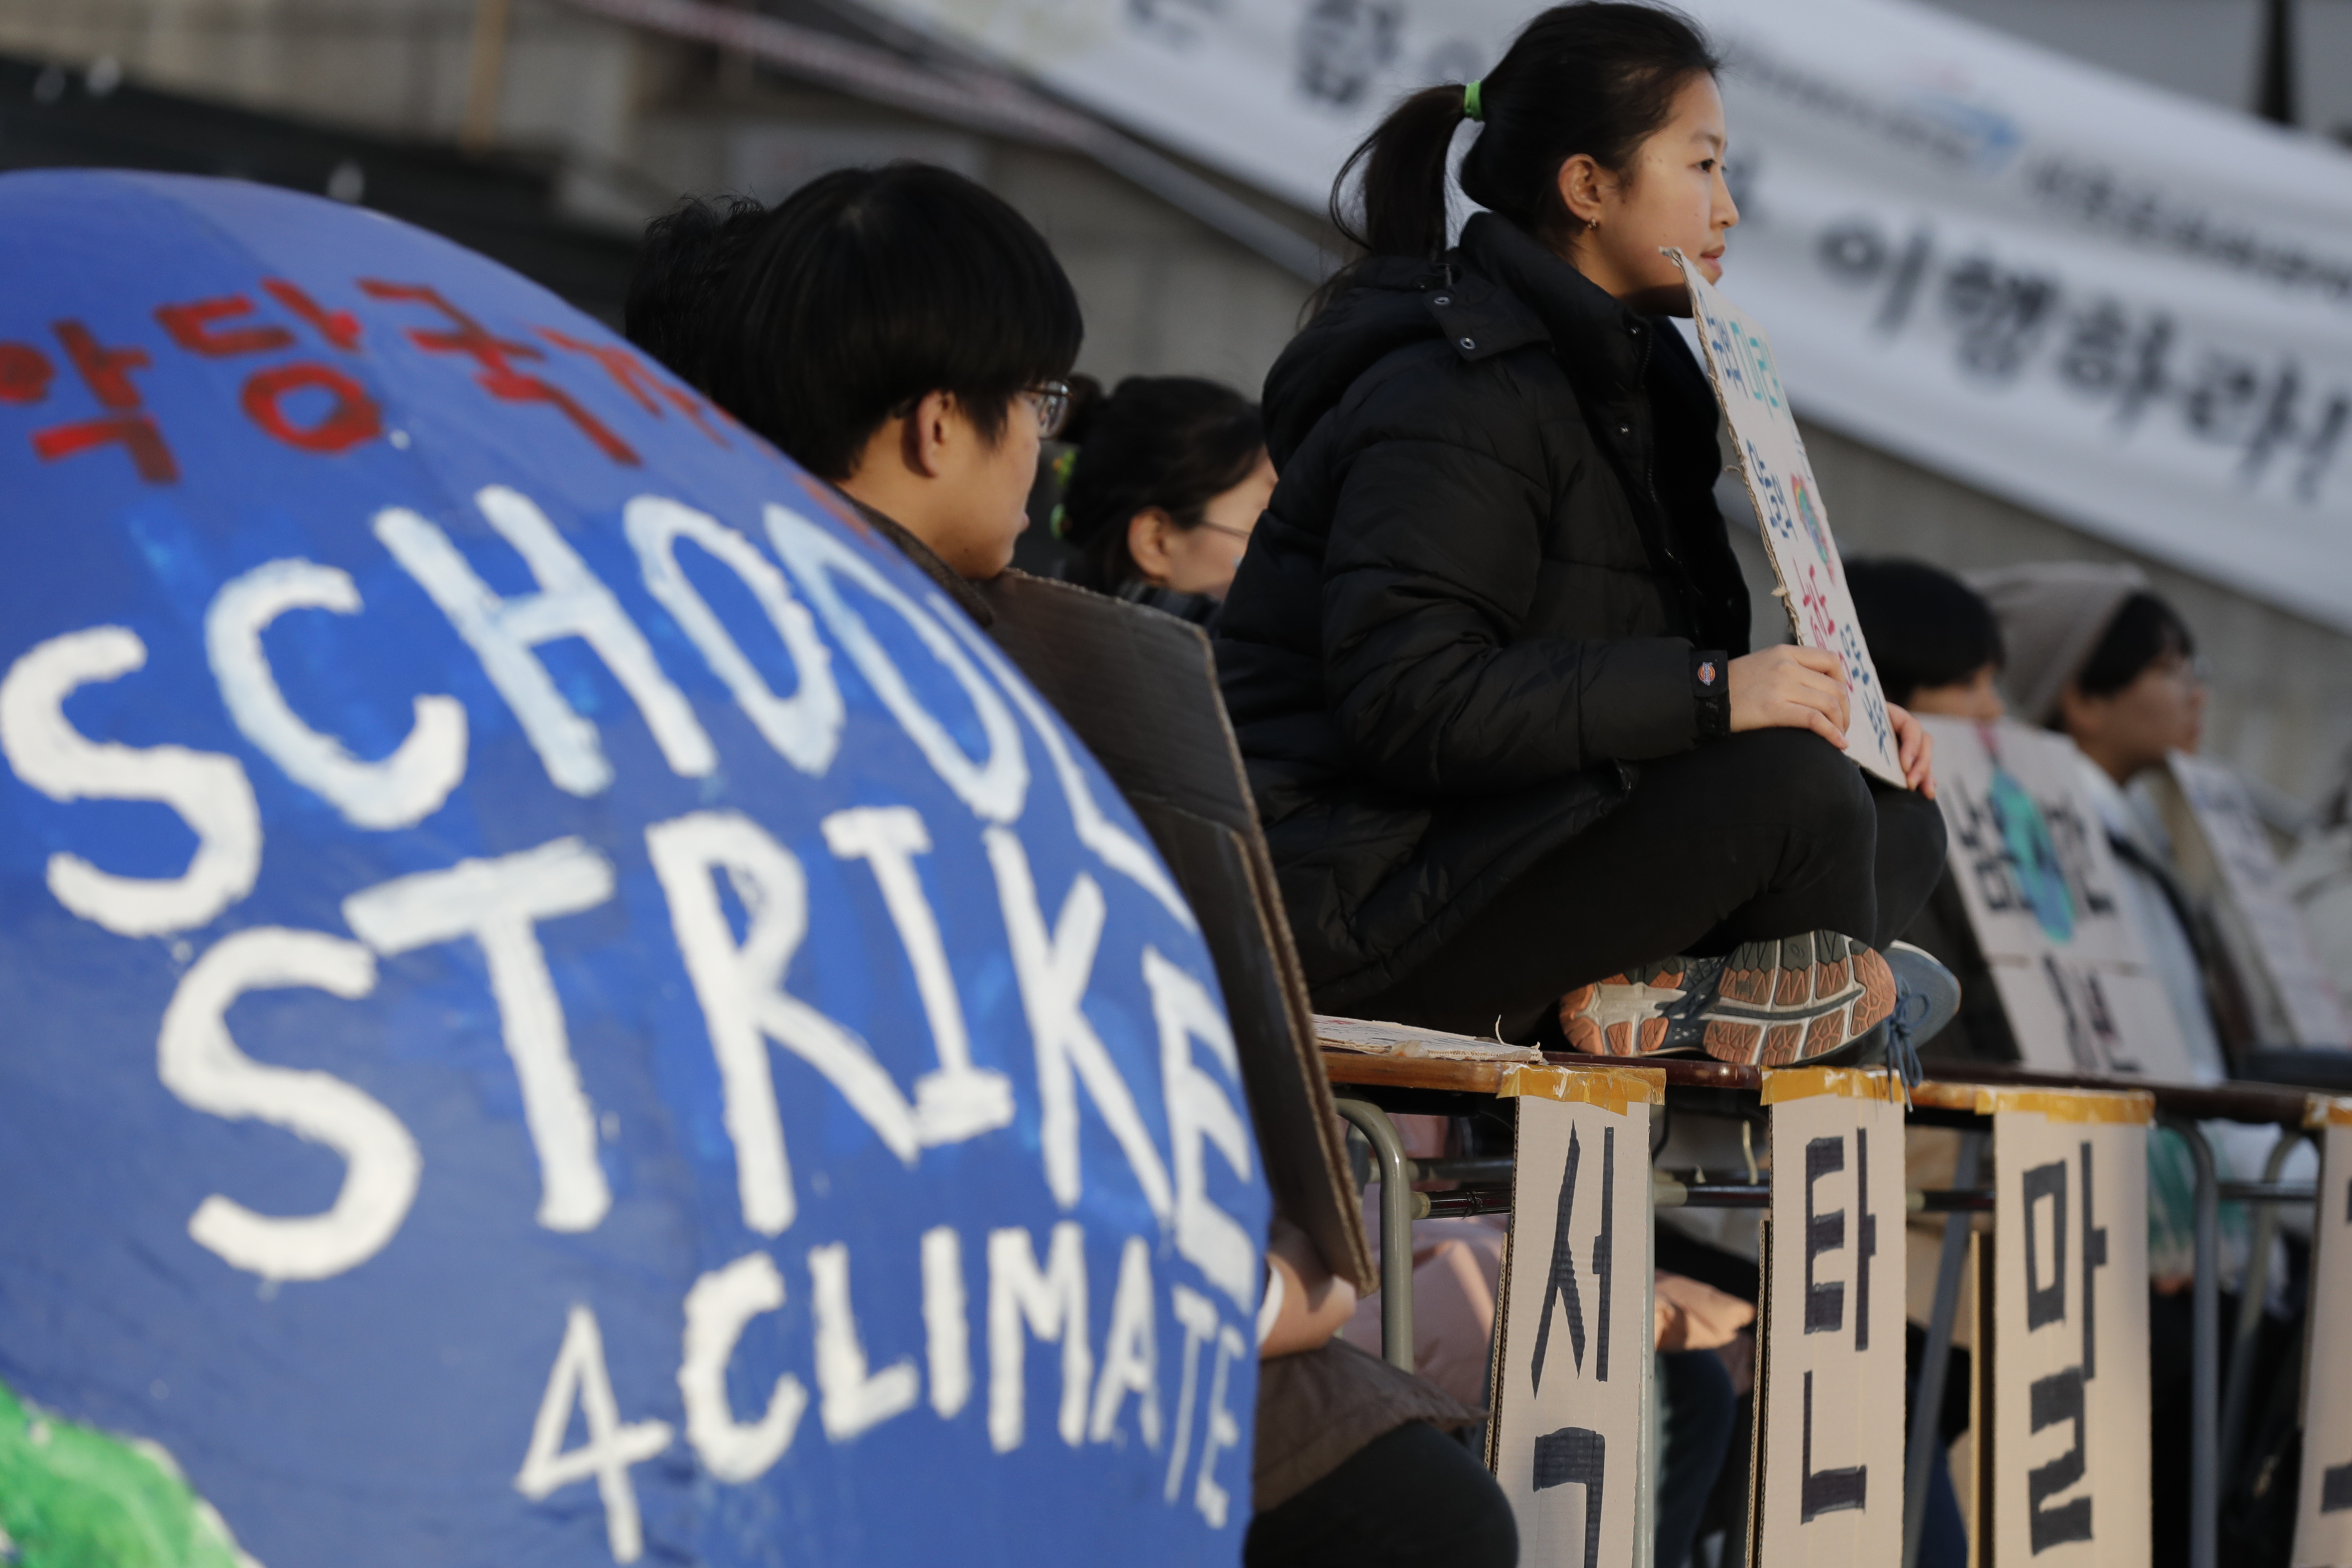 South Korean students hold banners during a rally for climate strike for future in Seoul, South Korea, Friday, Nov. 29, 2019. More than 10 students attended the rally demanding their government to take sufficient action against climate change. (AP Photo/Lee Jin-man)